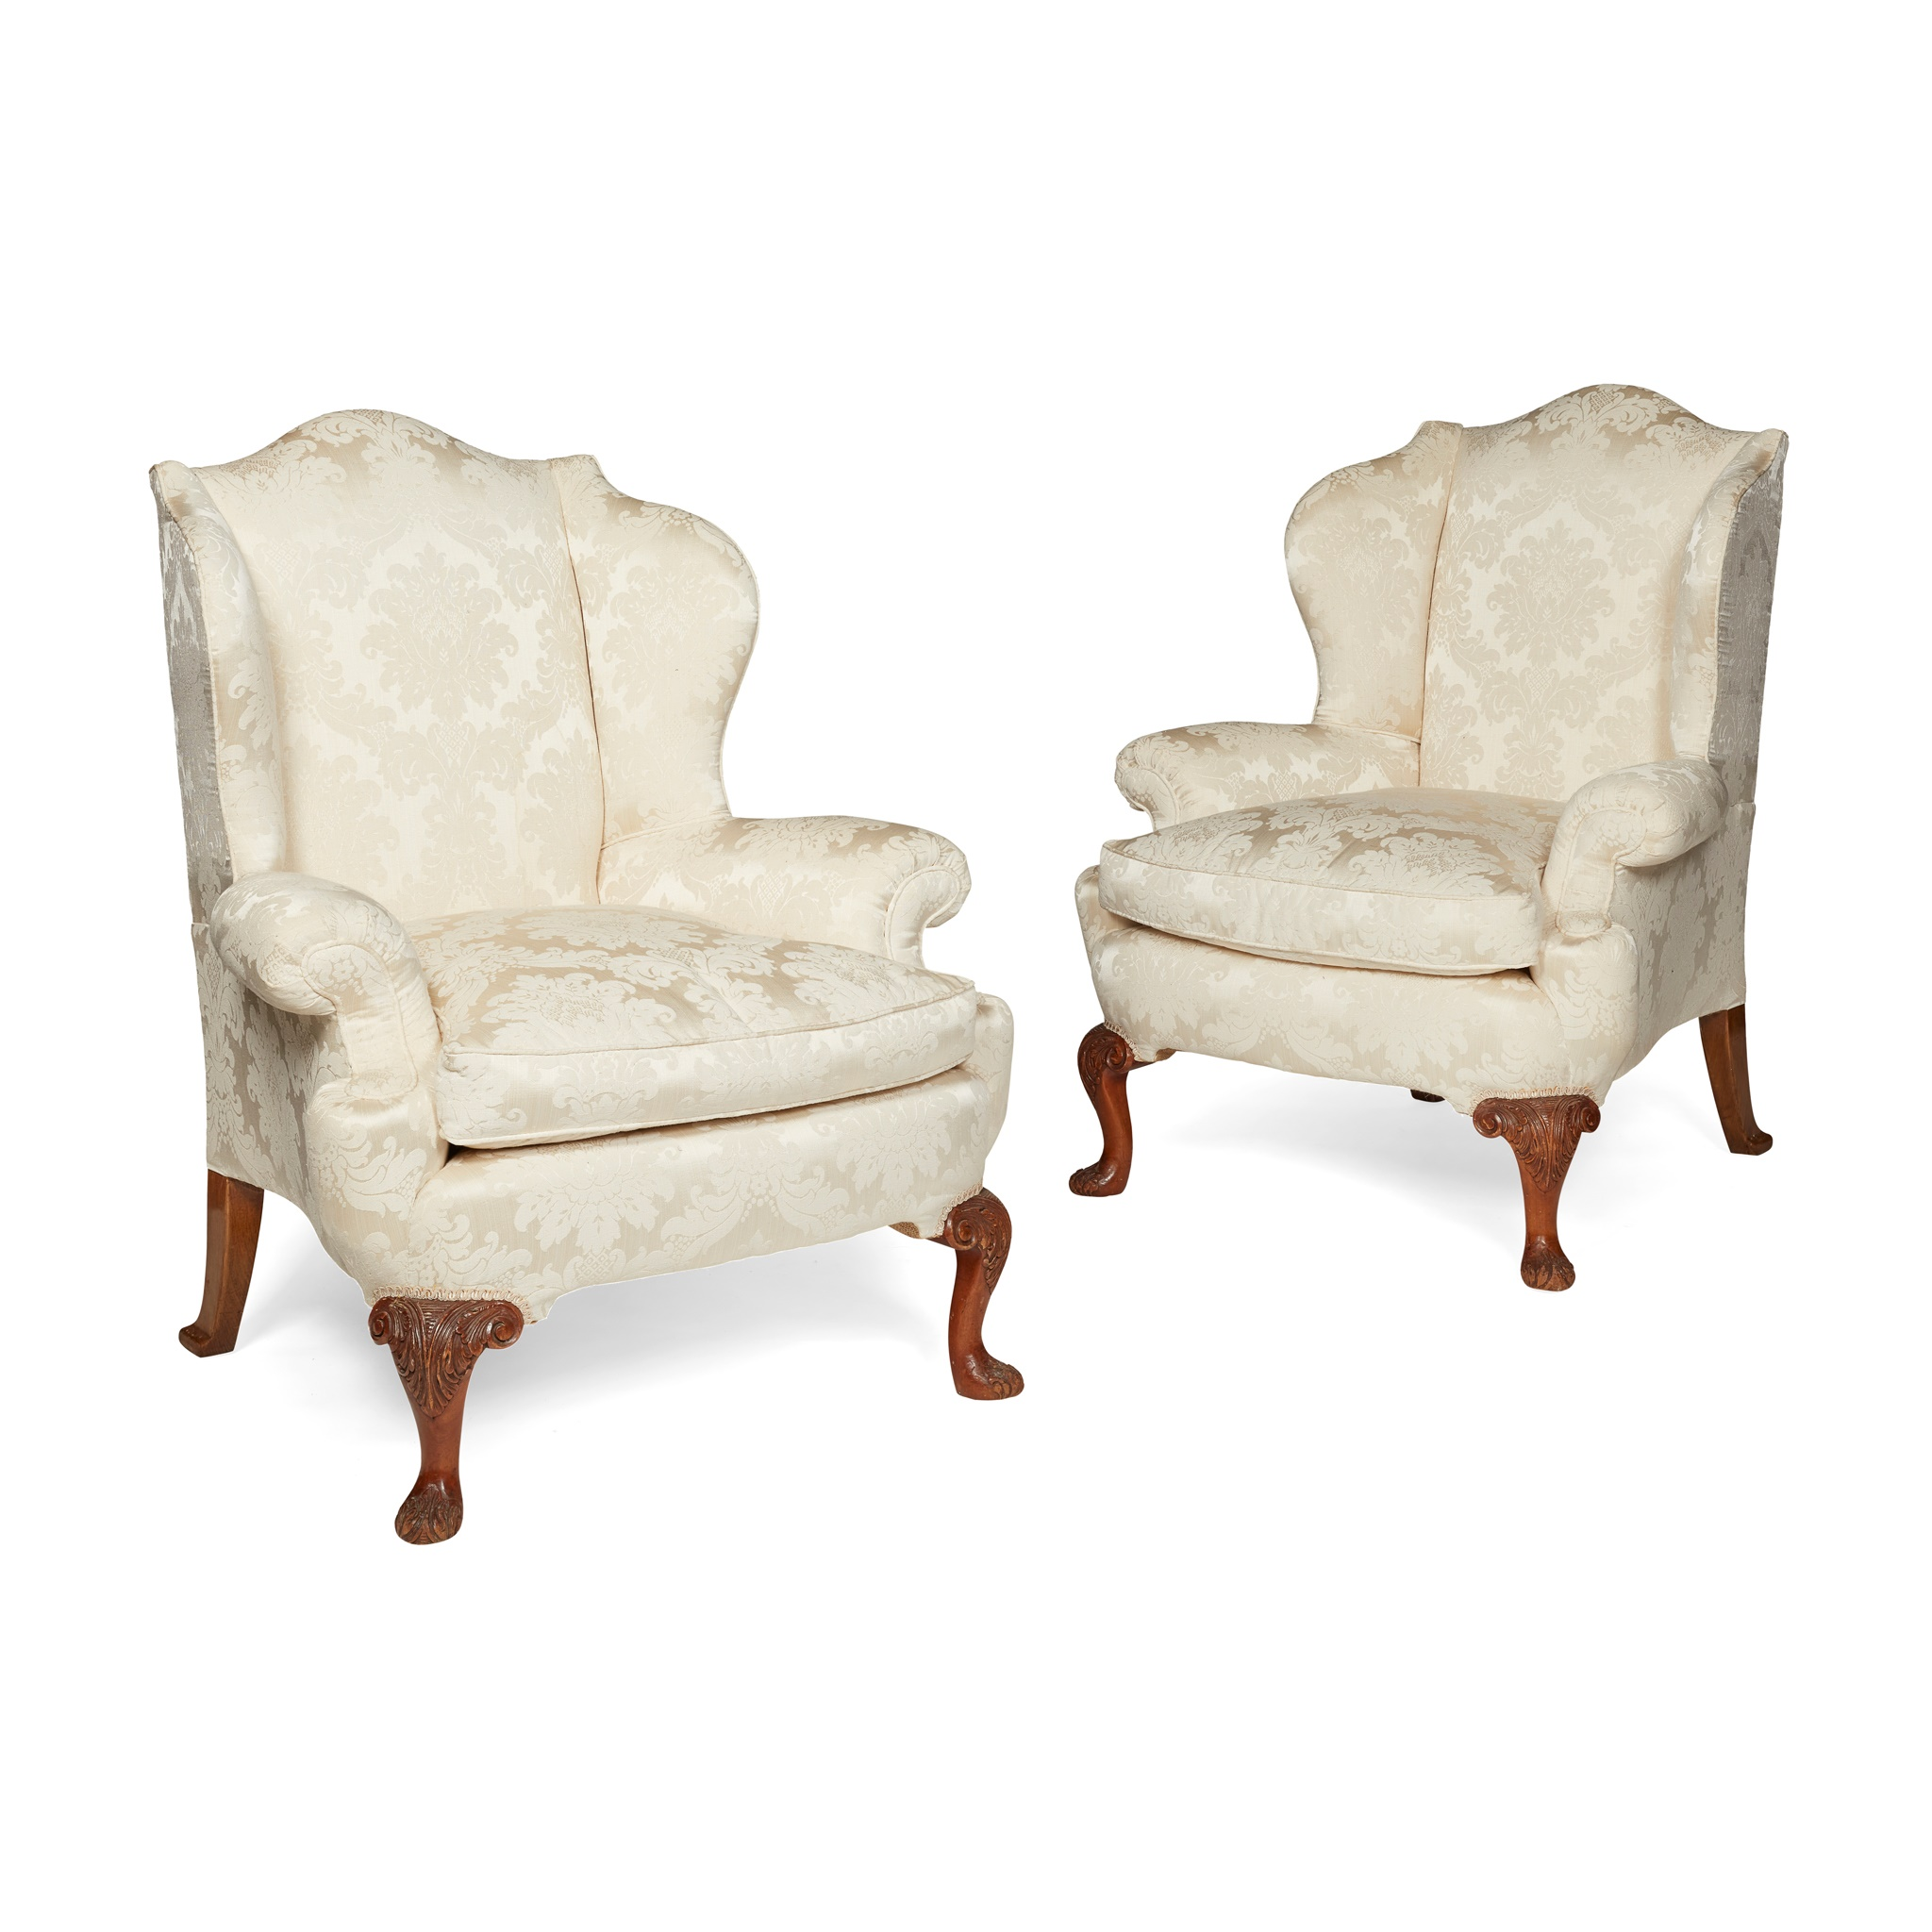 PAIR OF GEORGE II STYLE WING ARMCHAIRS 20TH CENTURY